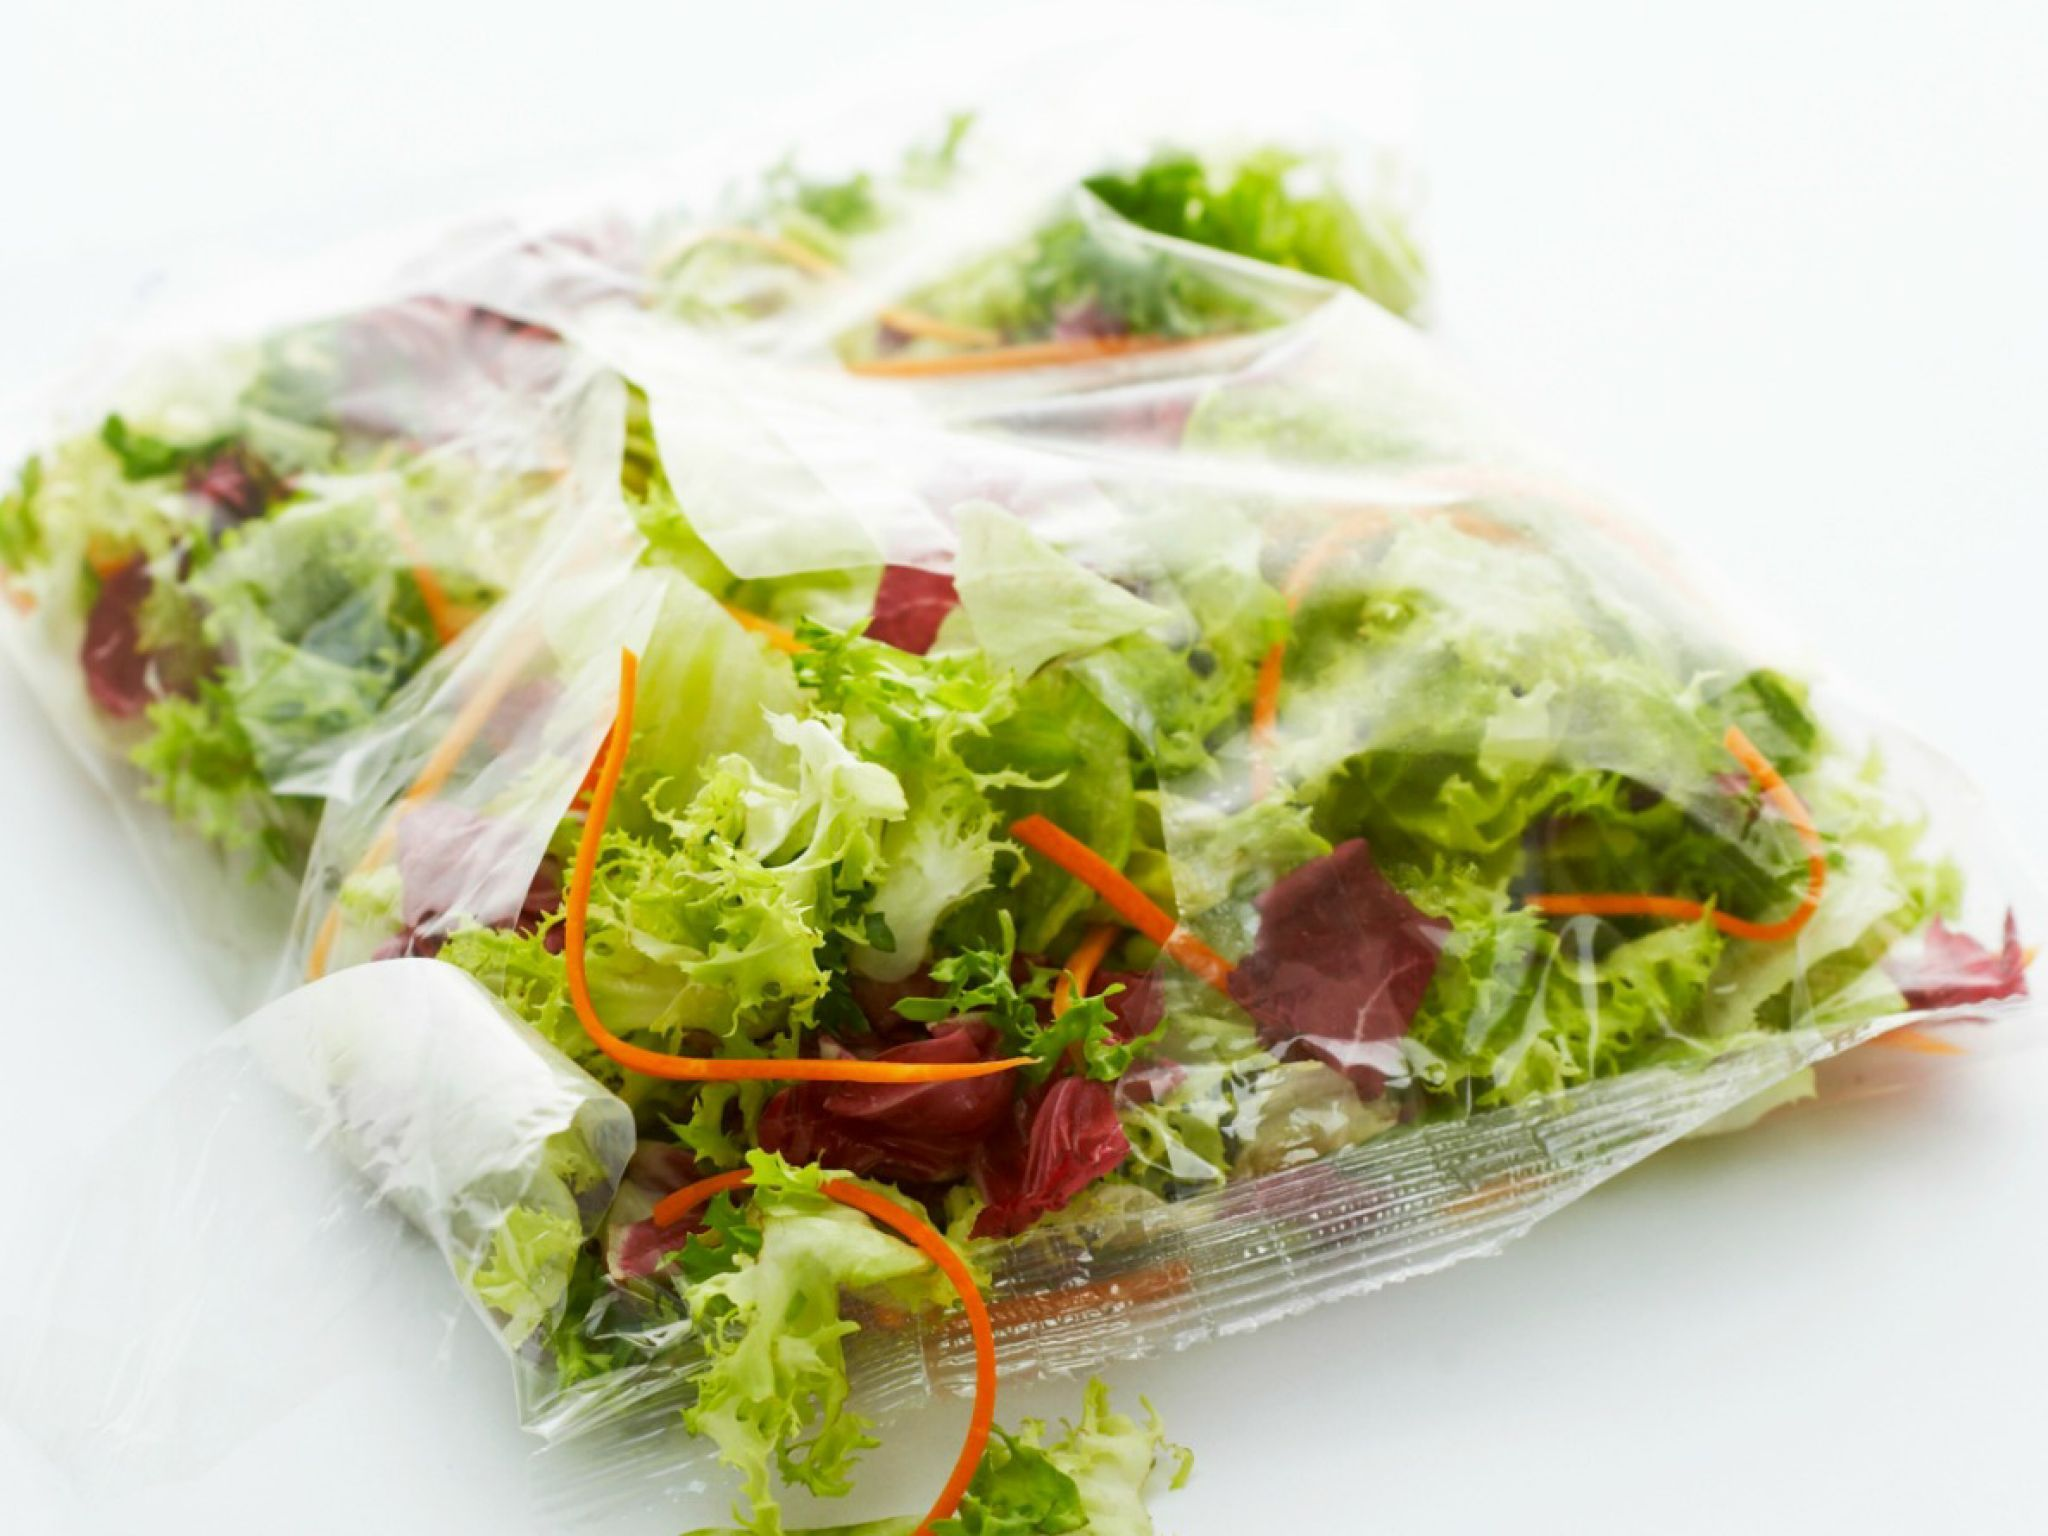 Bags of Prewashed Greens : Some produce will last for weeks —but, sadly, not packaged lettuces and spinach. Even if the leaves aren't wilted, heed the expiration date on the bag to avoid exposing yourself to bacterial growth.  Photo: Marc O. Finley/Getty